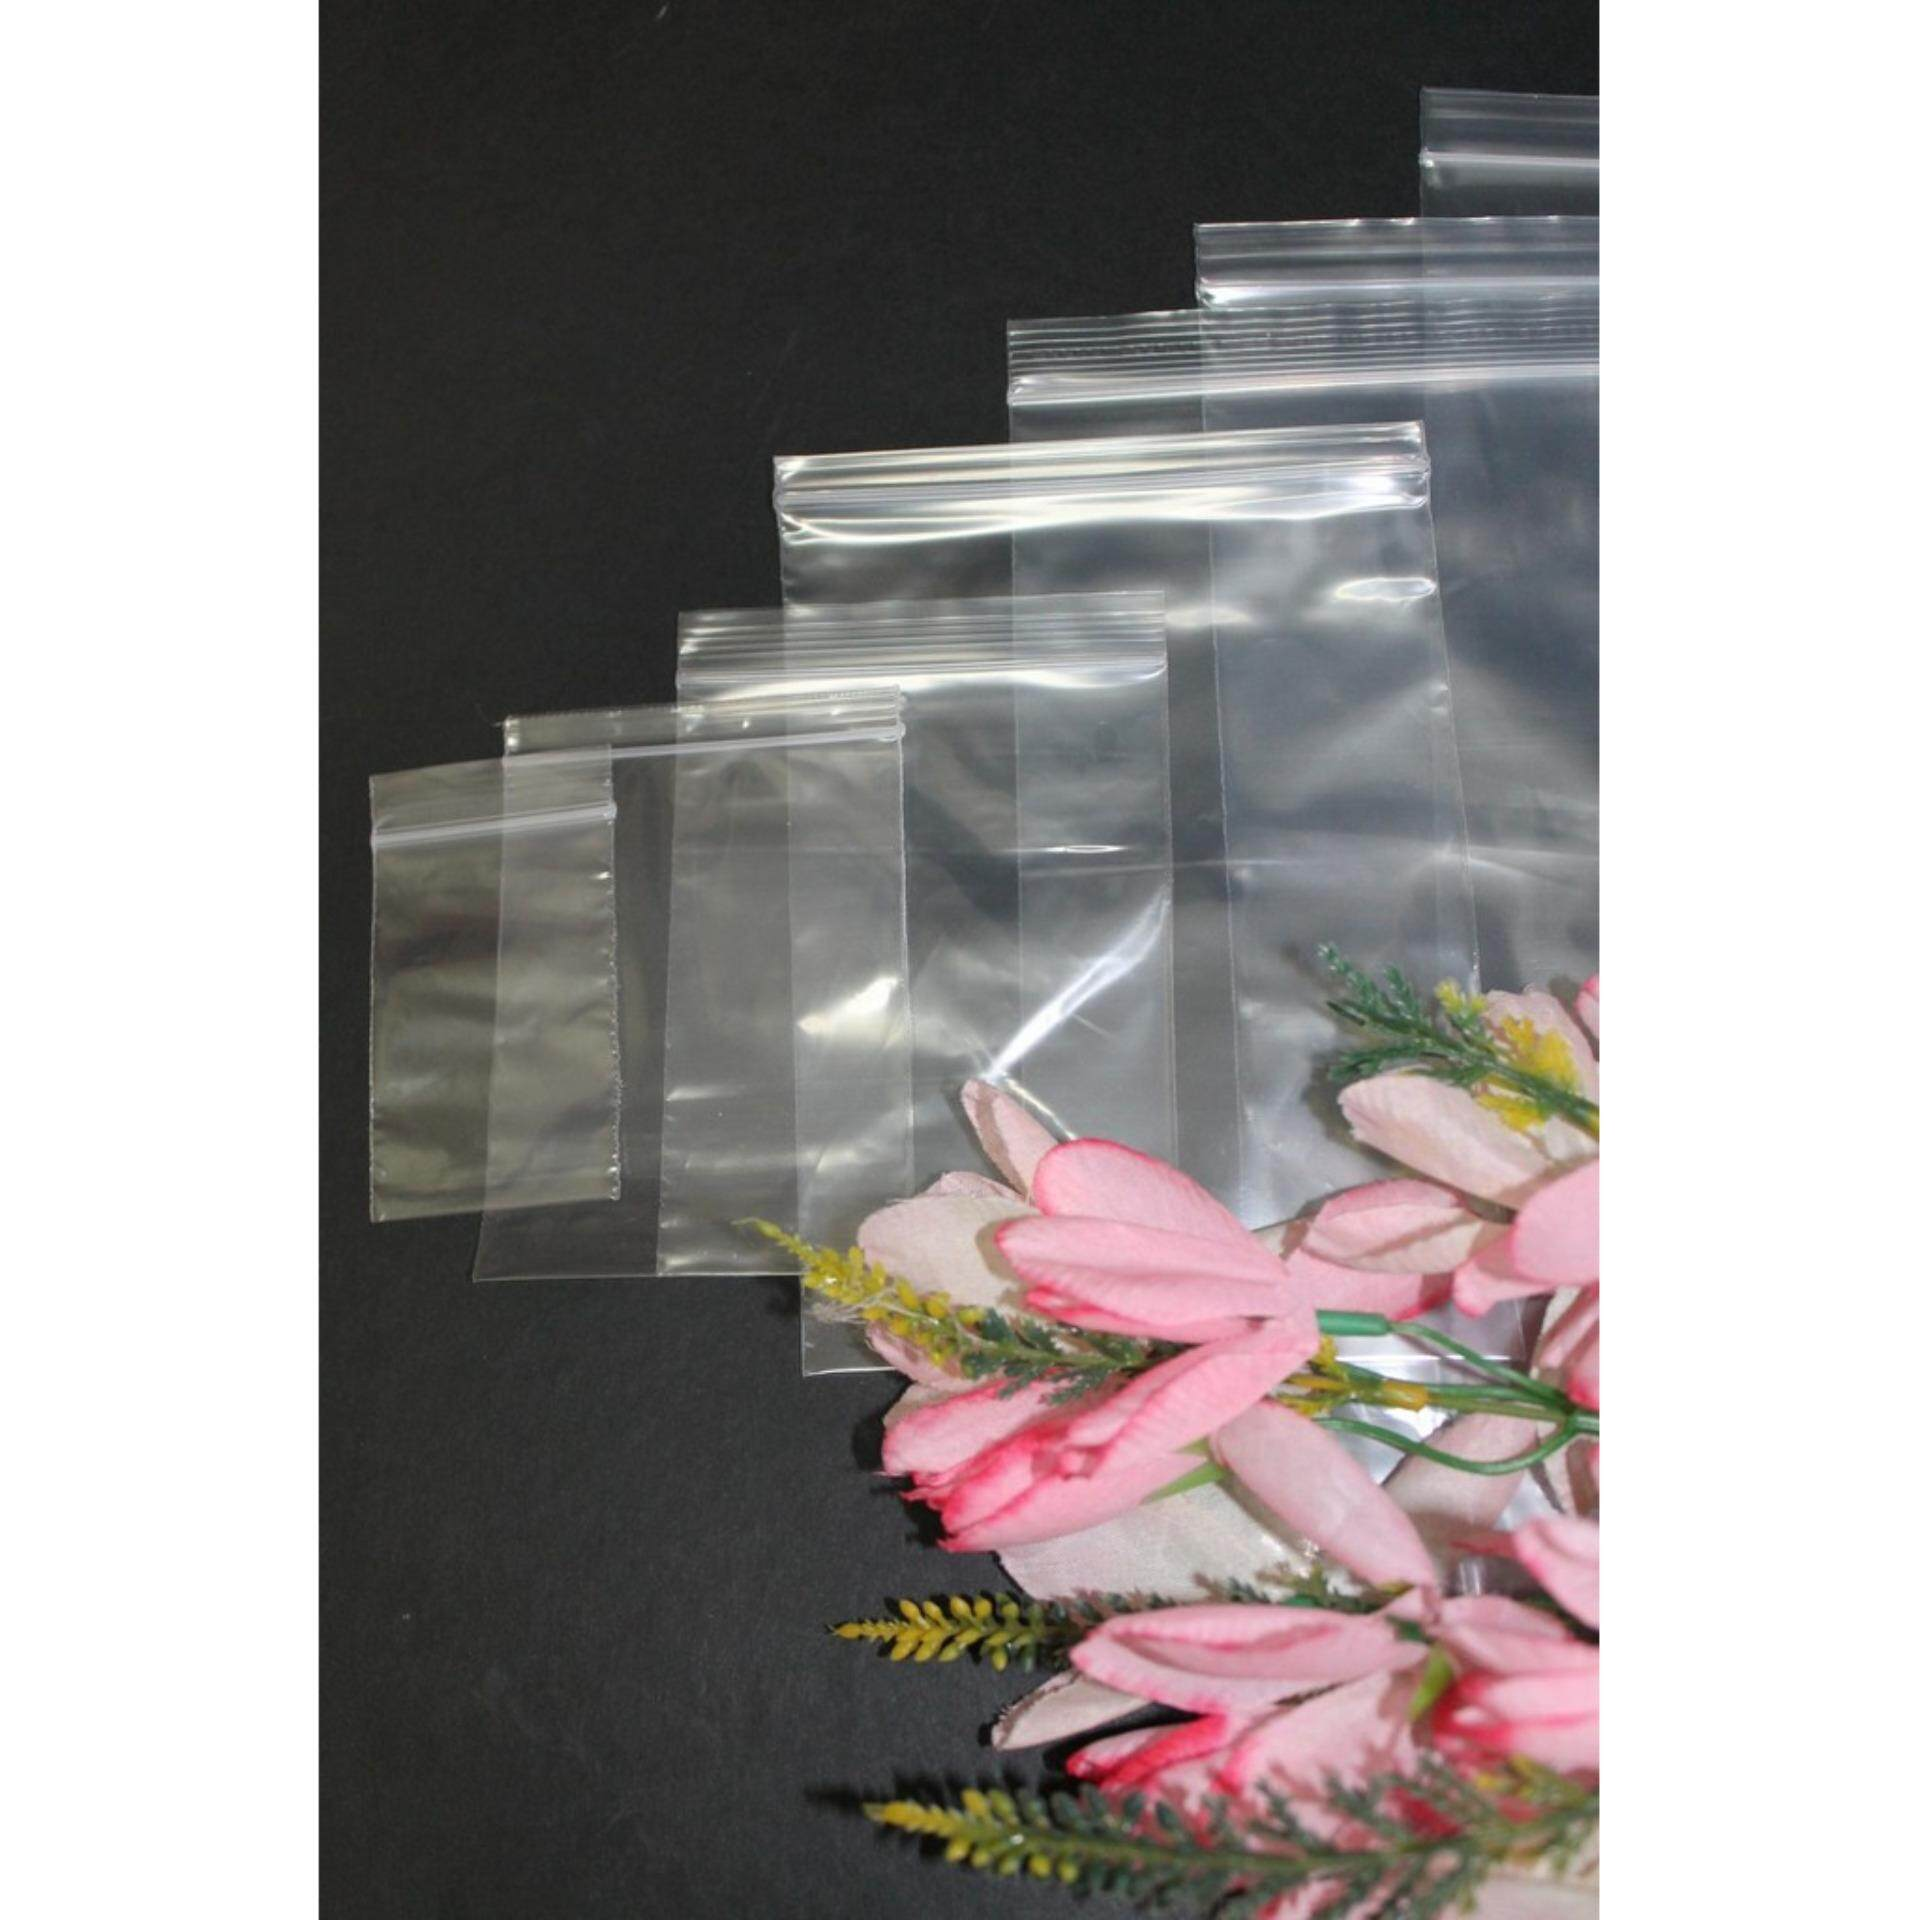 200 pcs Zipper Bag 8X12 inches Packaging Powder,Food,Stationery,Jewelry (clear)